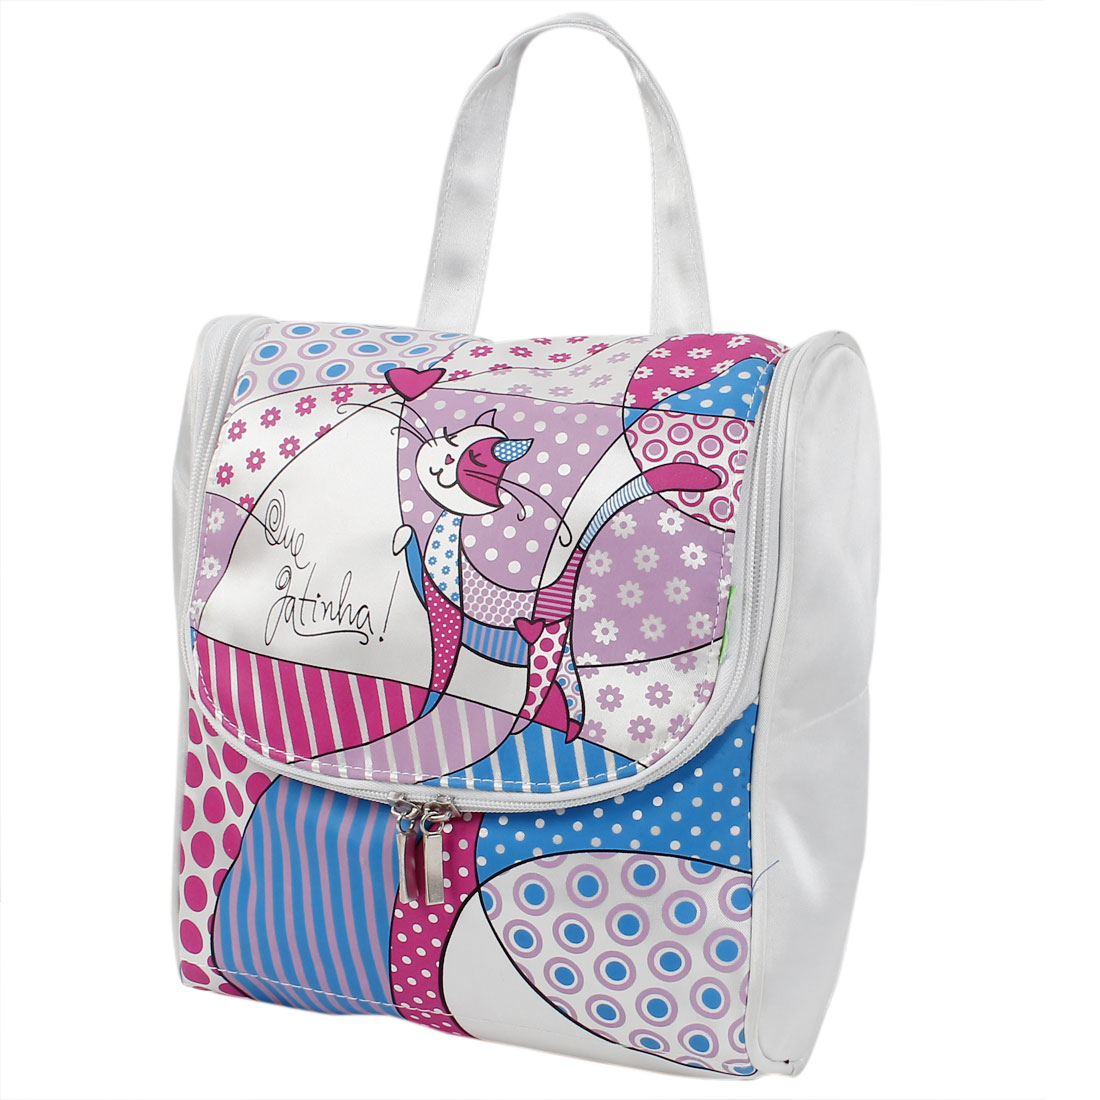 Lady Polyester Cartoon Cat Print Travel Toiletry Cosmetic Storage Handbag White